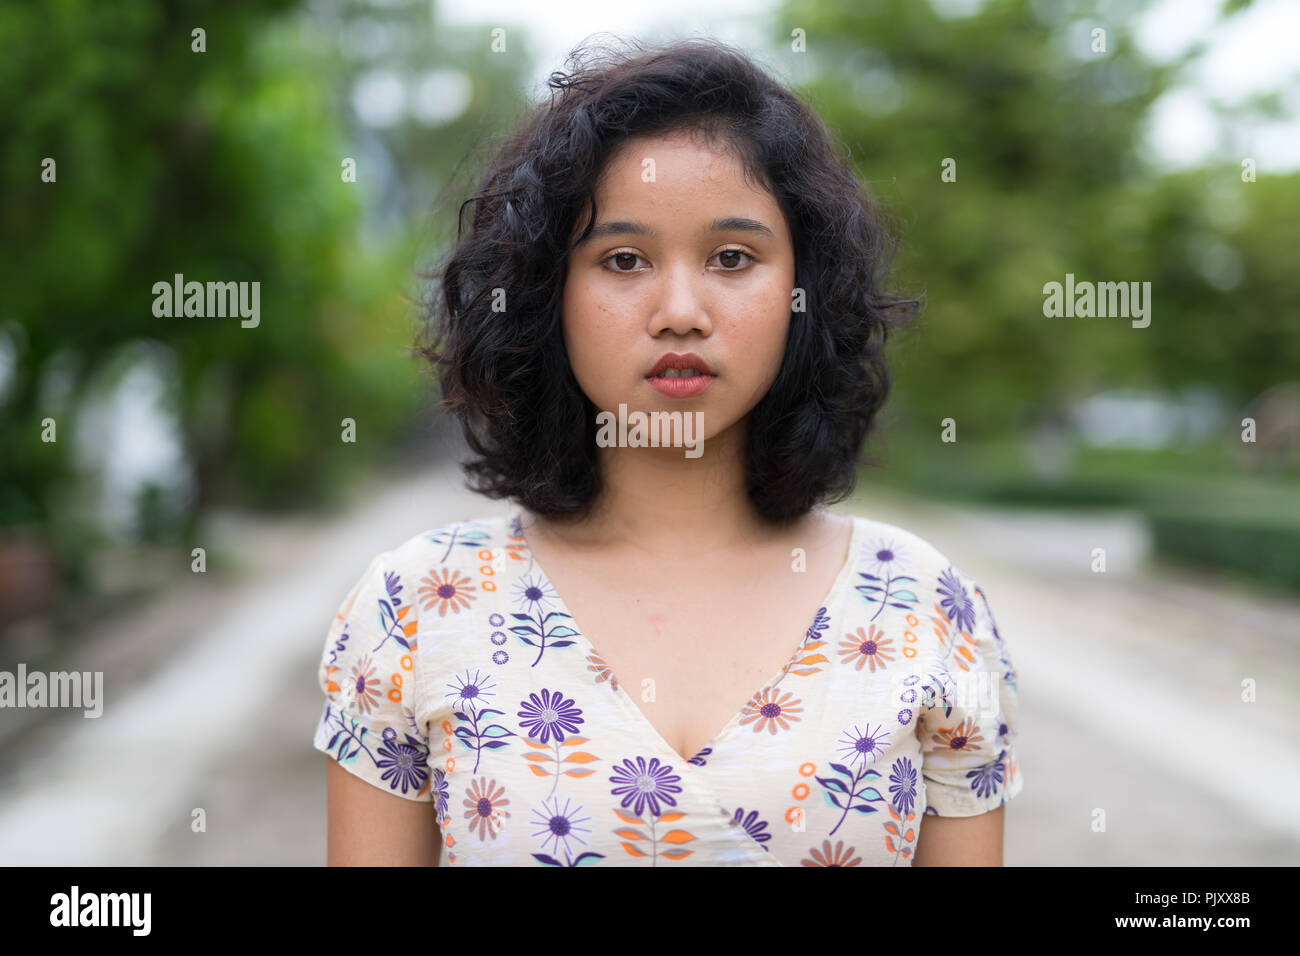 Beautiful Asian Woman With Short Curly Hair Outdoors Stock Photo Alamy